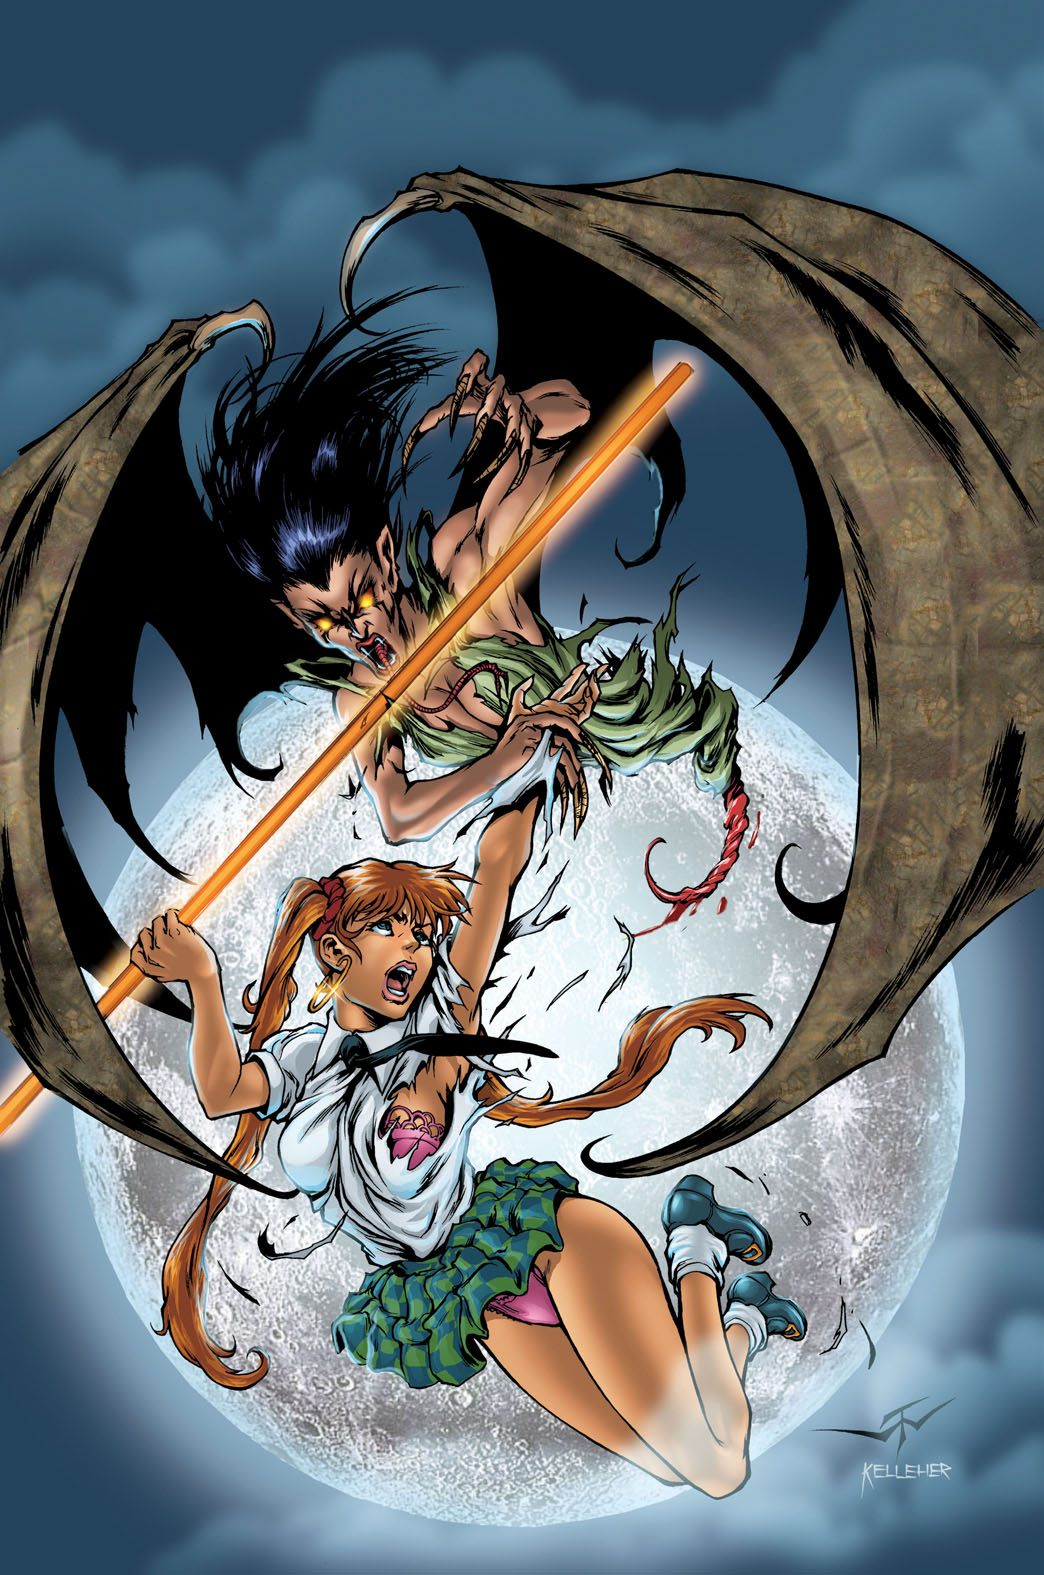 BANZAI GIRL VS. THE MANANANGGAL!